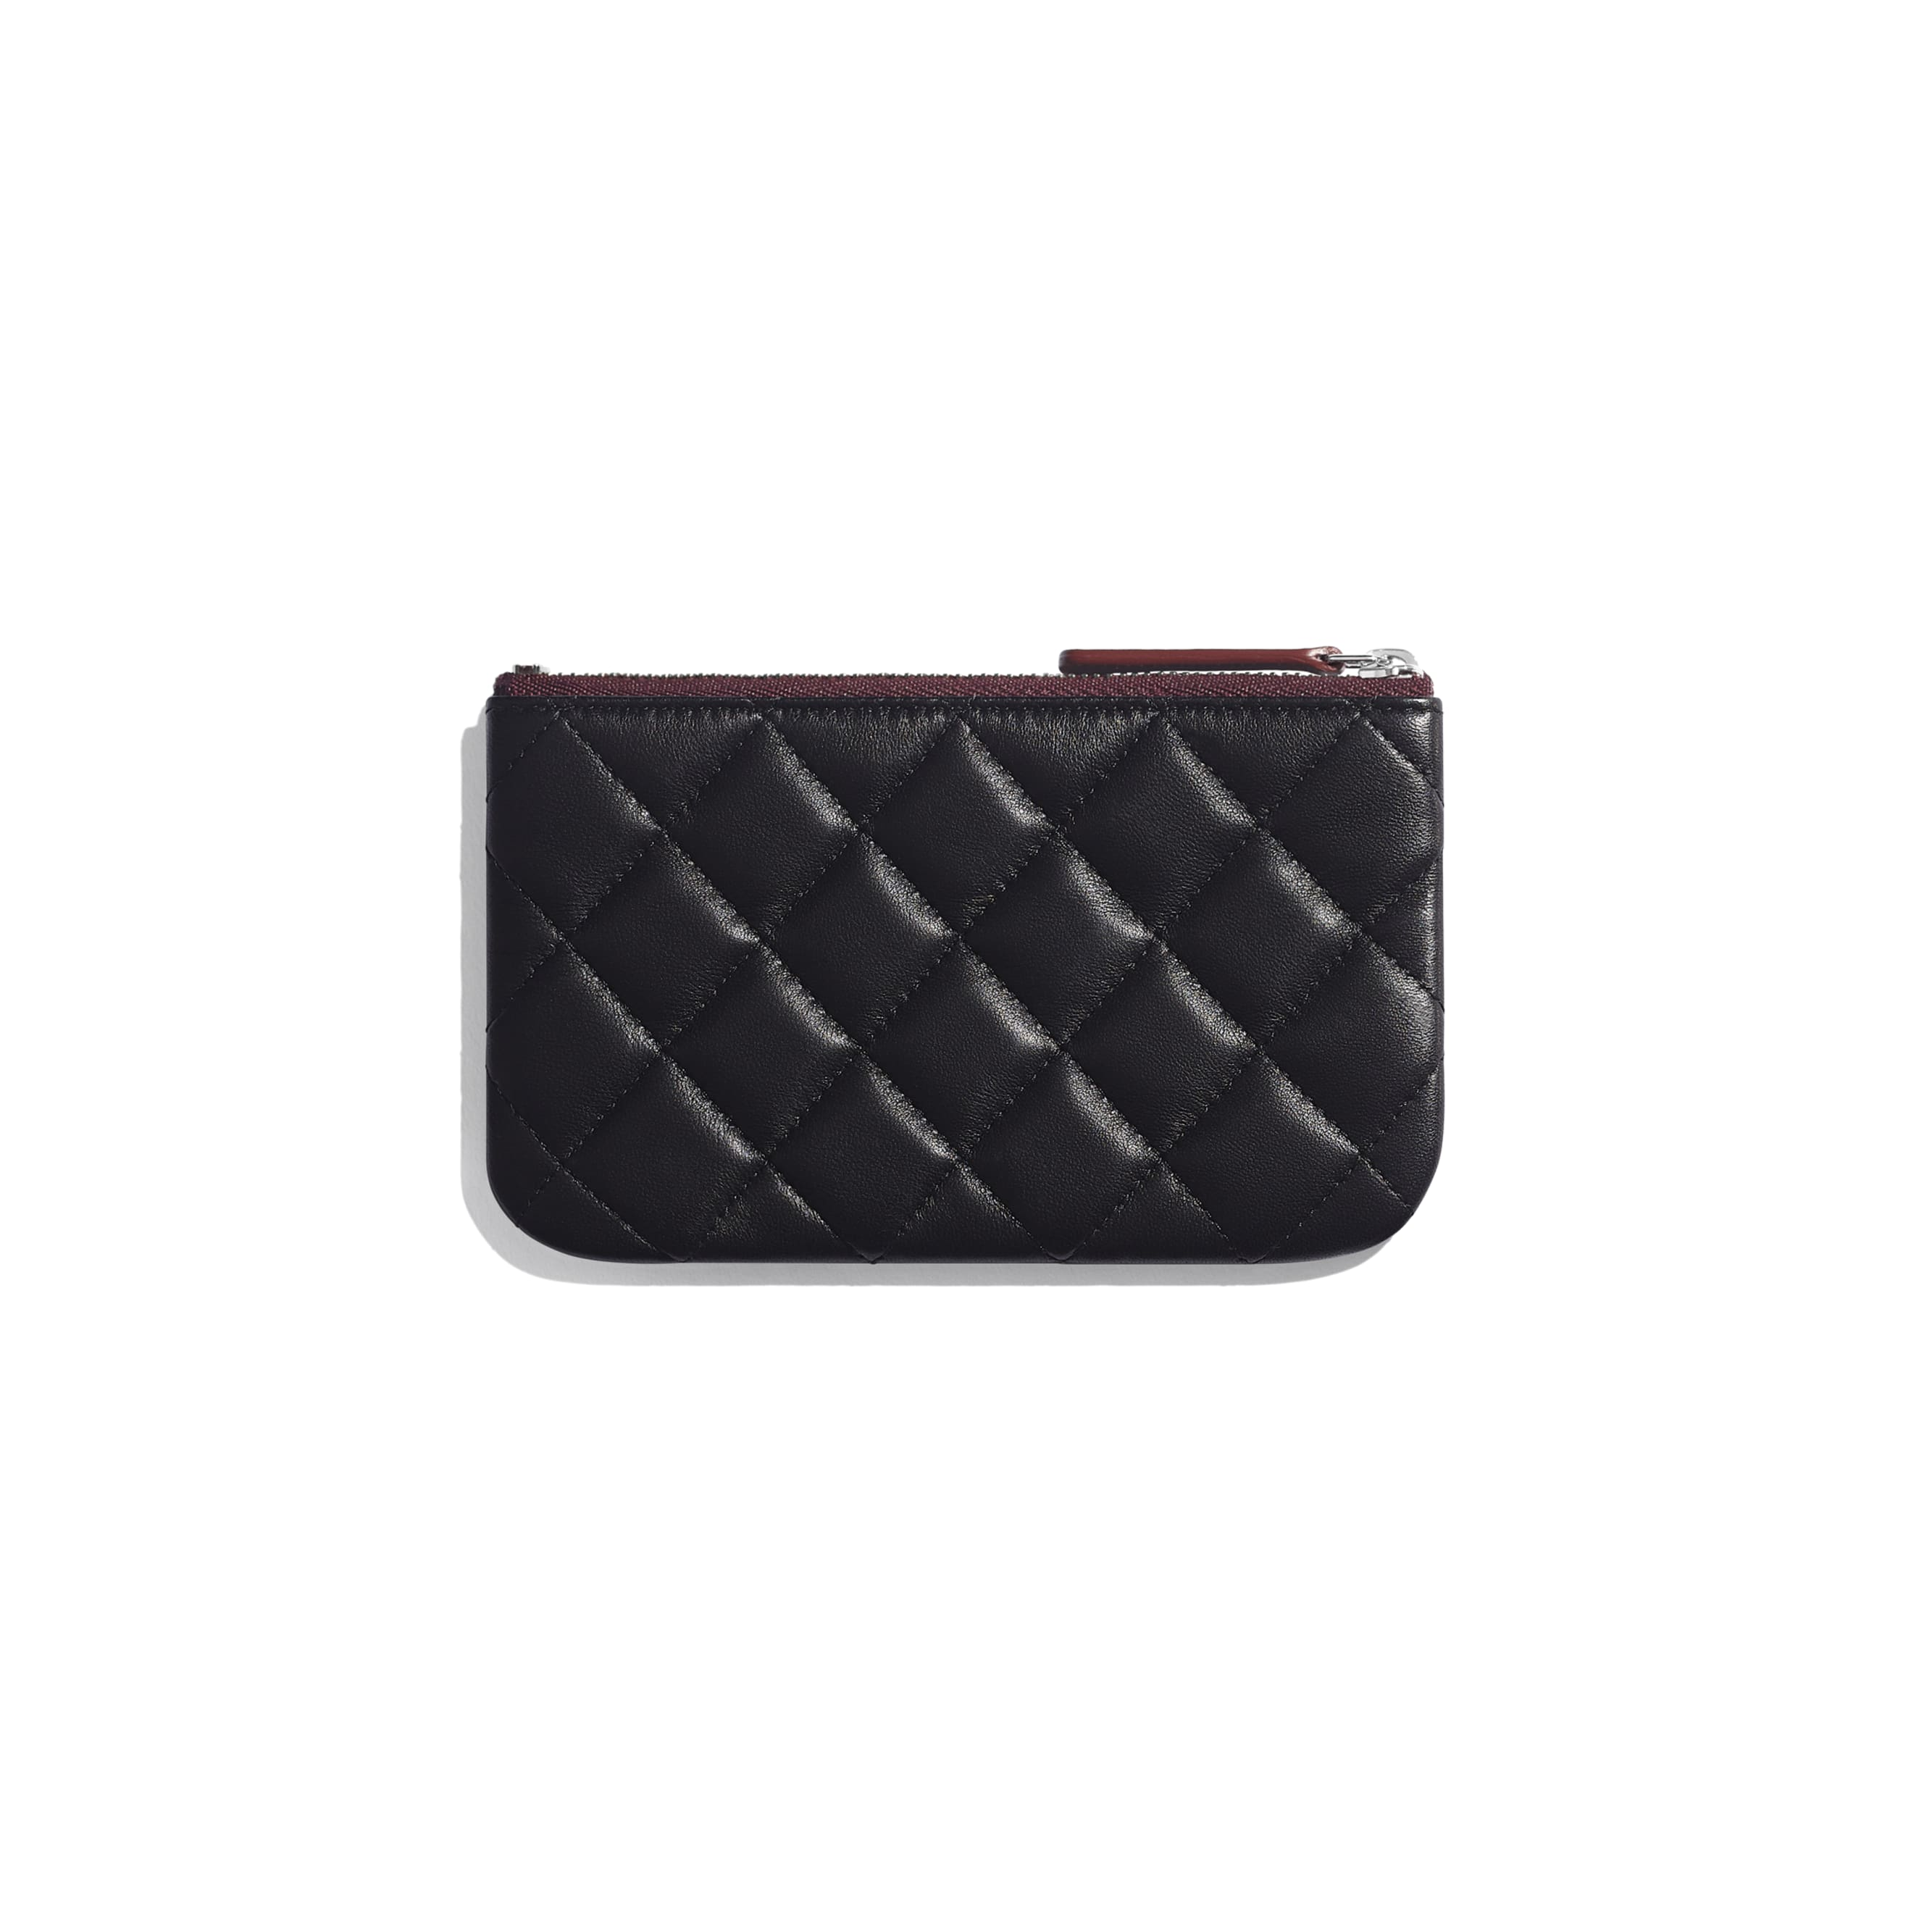 Classic Mini Pouch - Black - Lambskin - CHANEL - Alternative view - see standard sized version